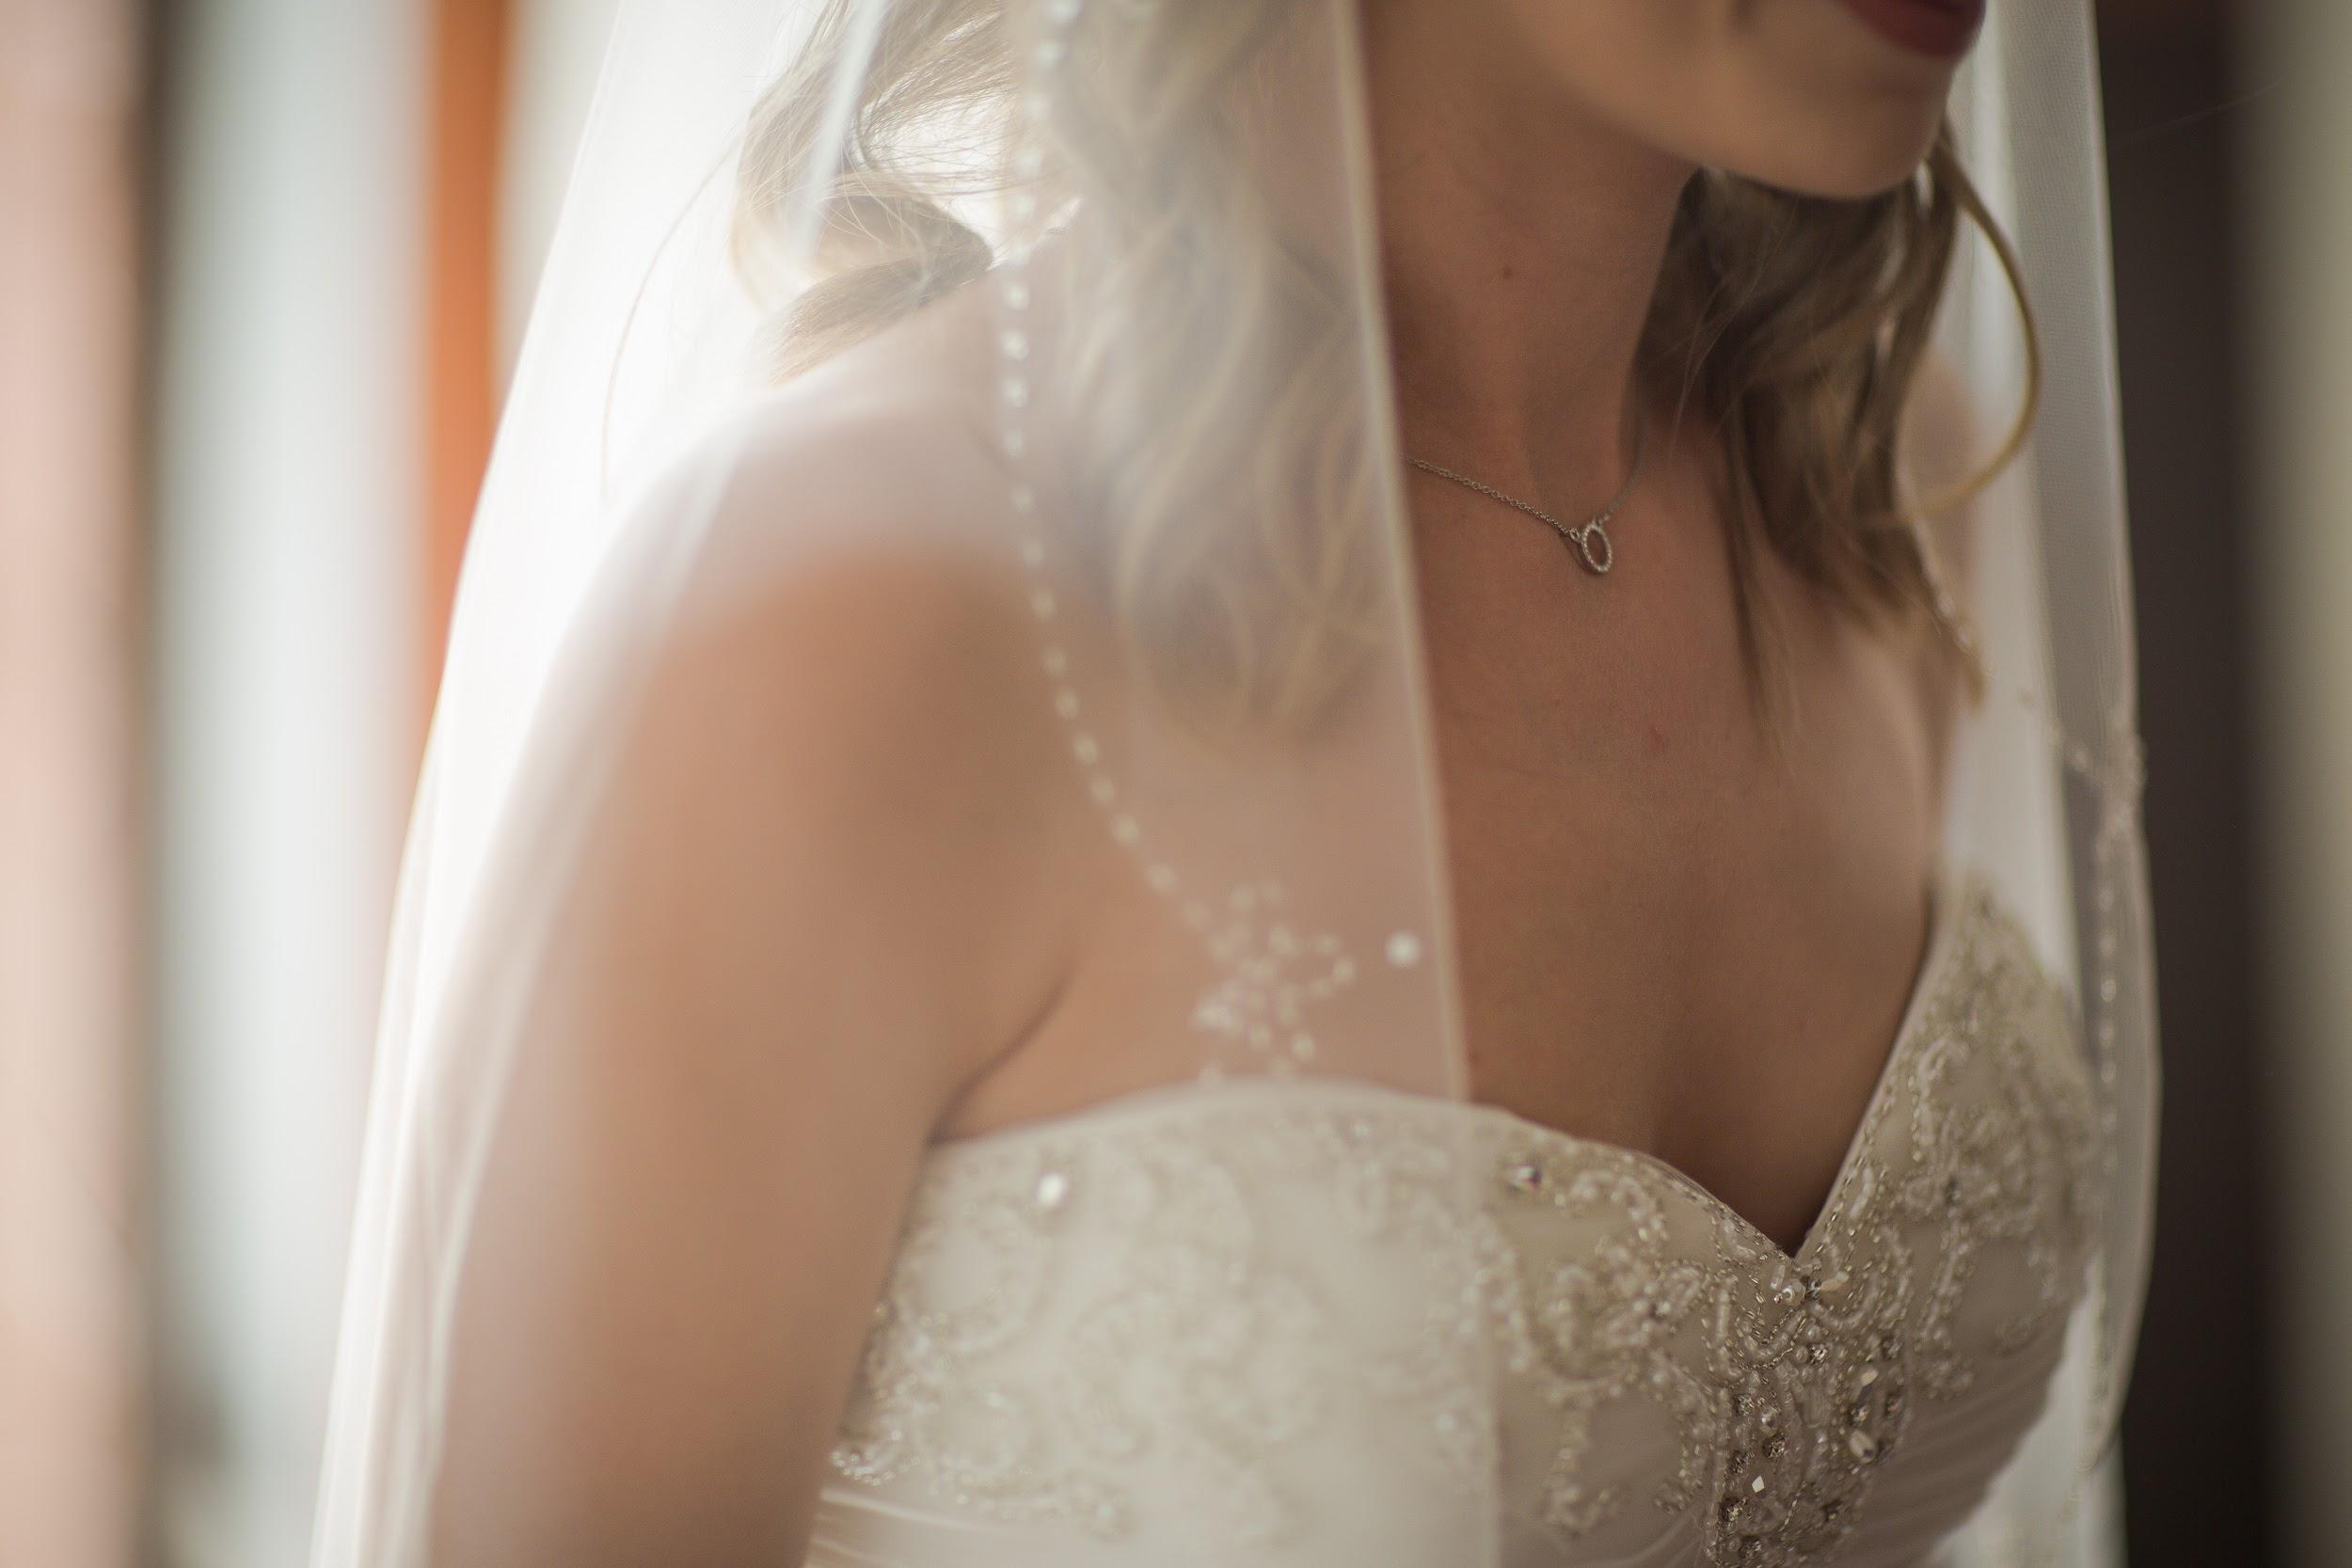 wedding photo shoots intricate details